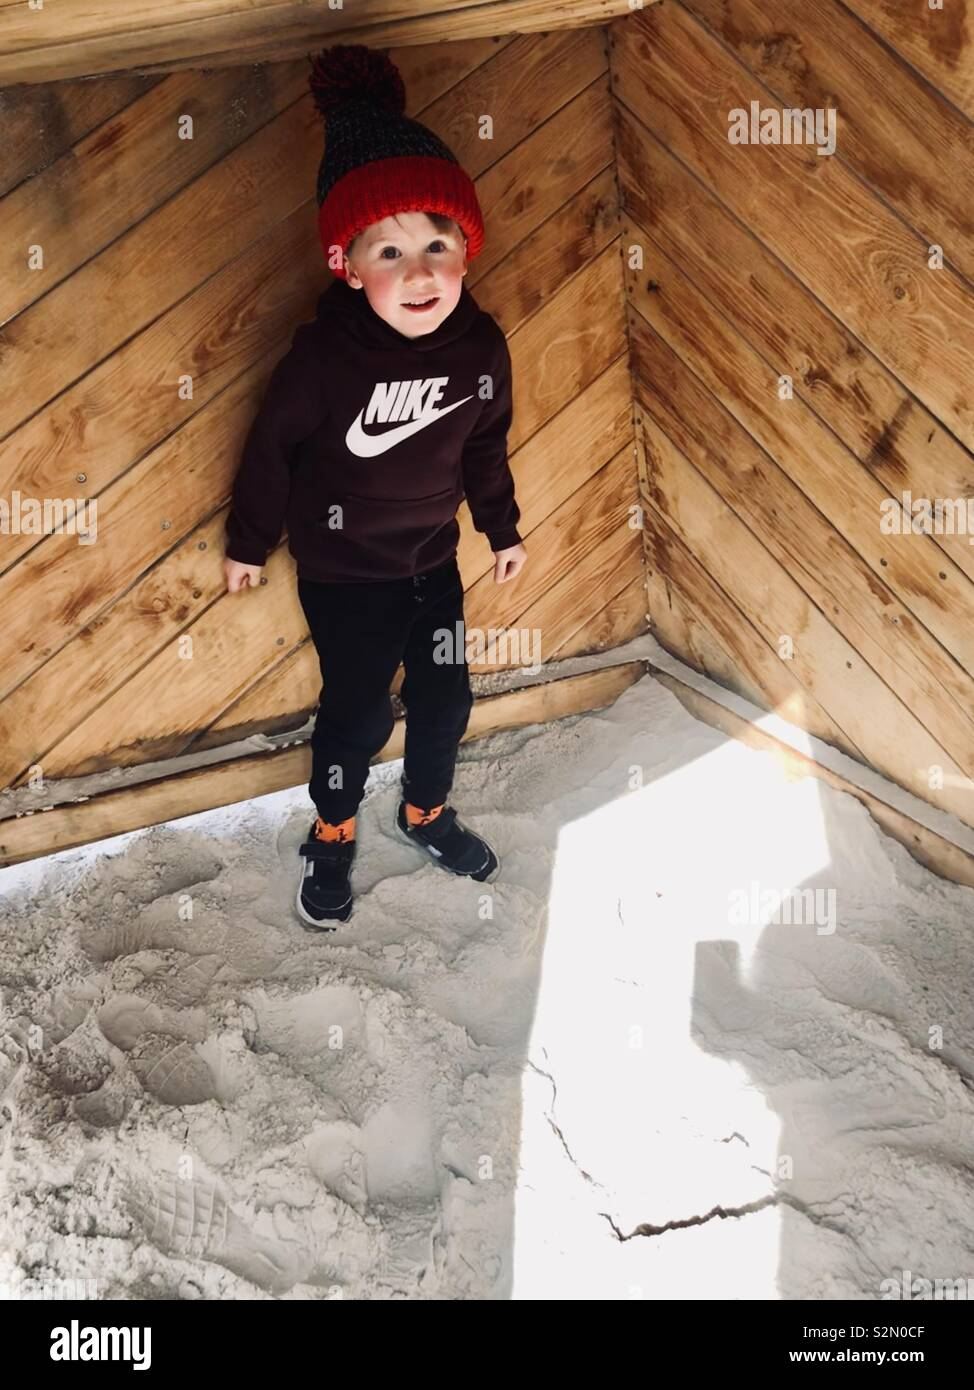 Boy hiding in crate at playpark - Stock Image